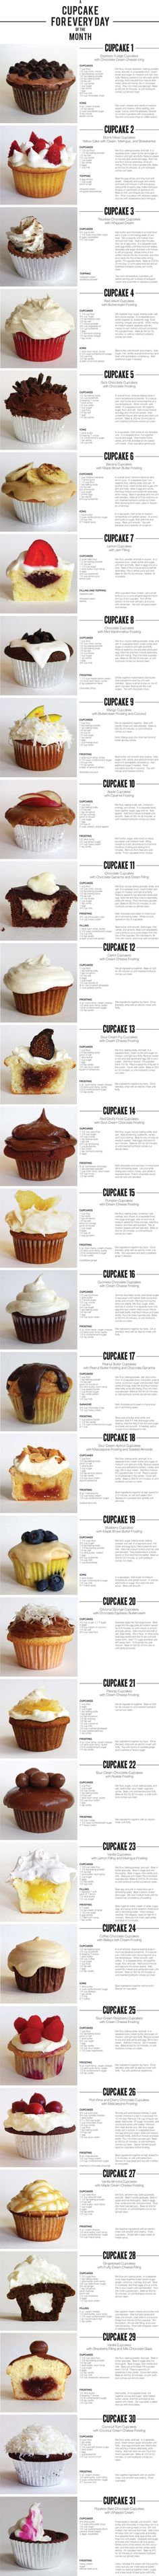 A cupcake for every day!